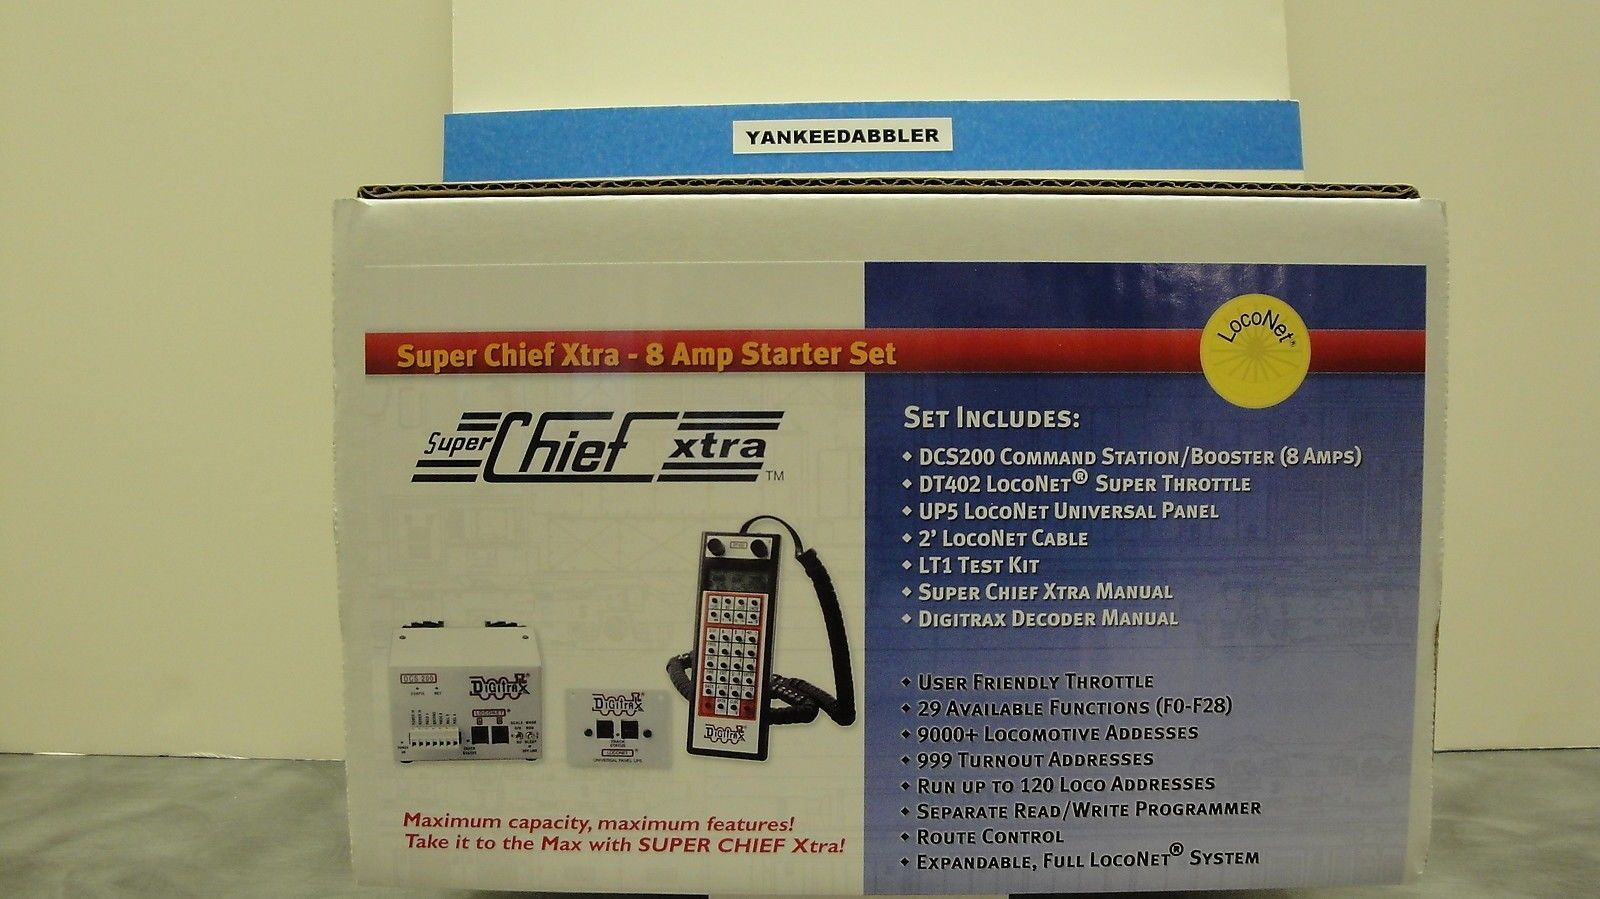 Digital Control Devices 158704 Digitrax Super Xtra Chief Starter Set 8 Amp Yankeedabbler Buy It Now Only 274 95 On Ebay Digital Control With Images Model Trains